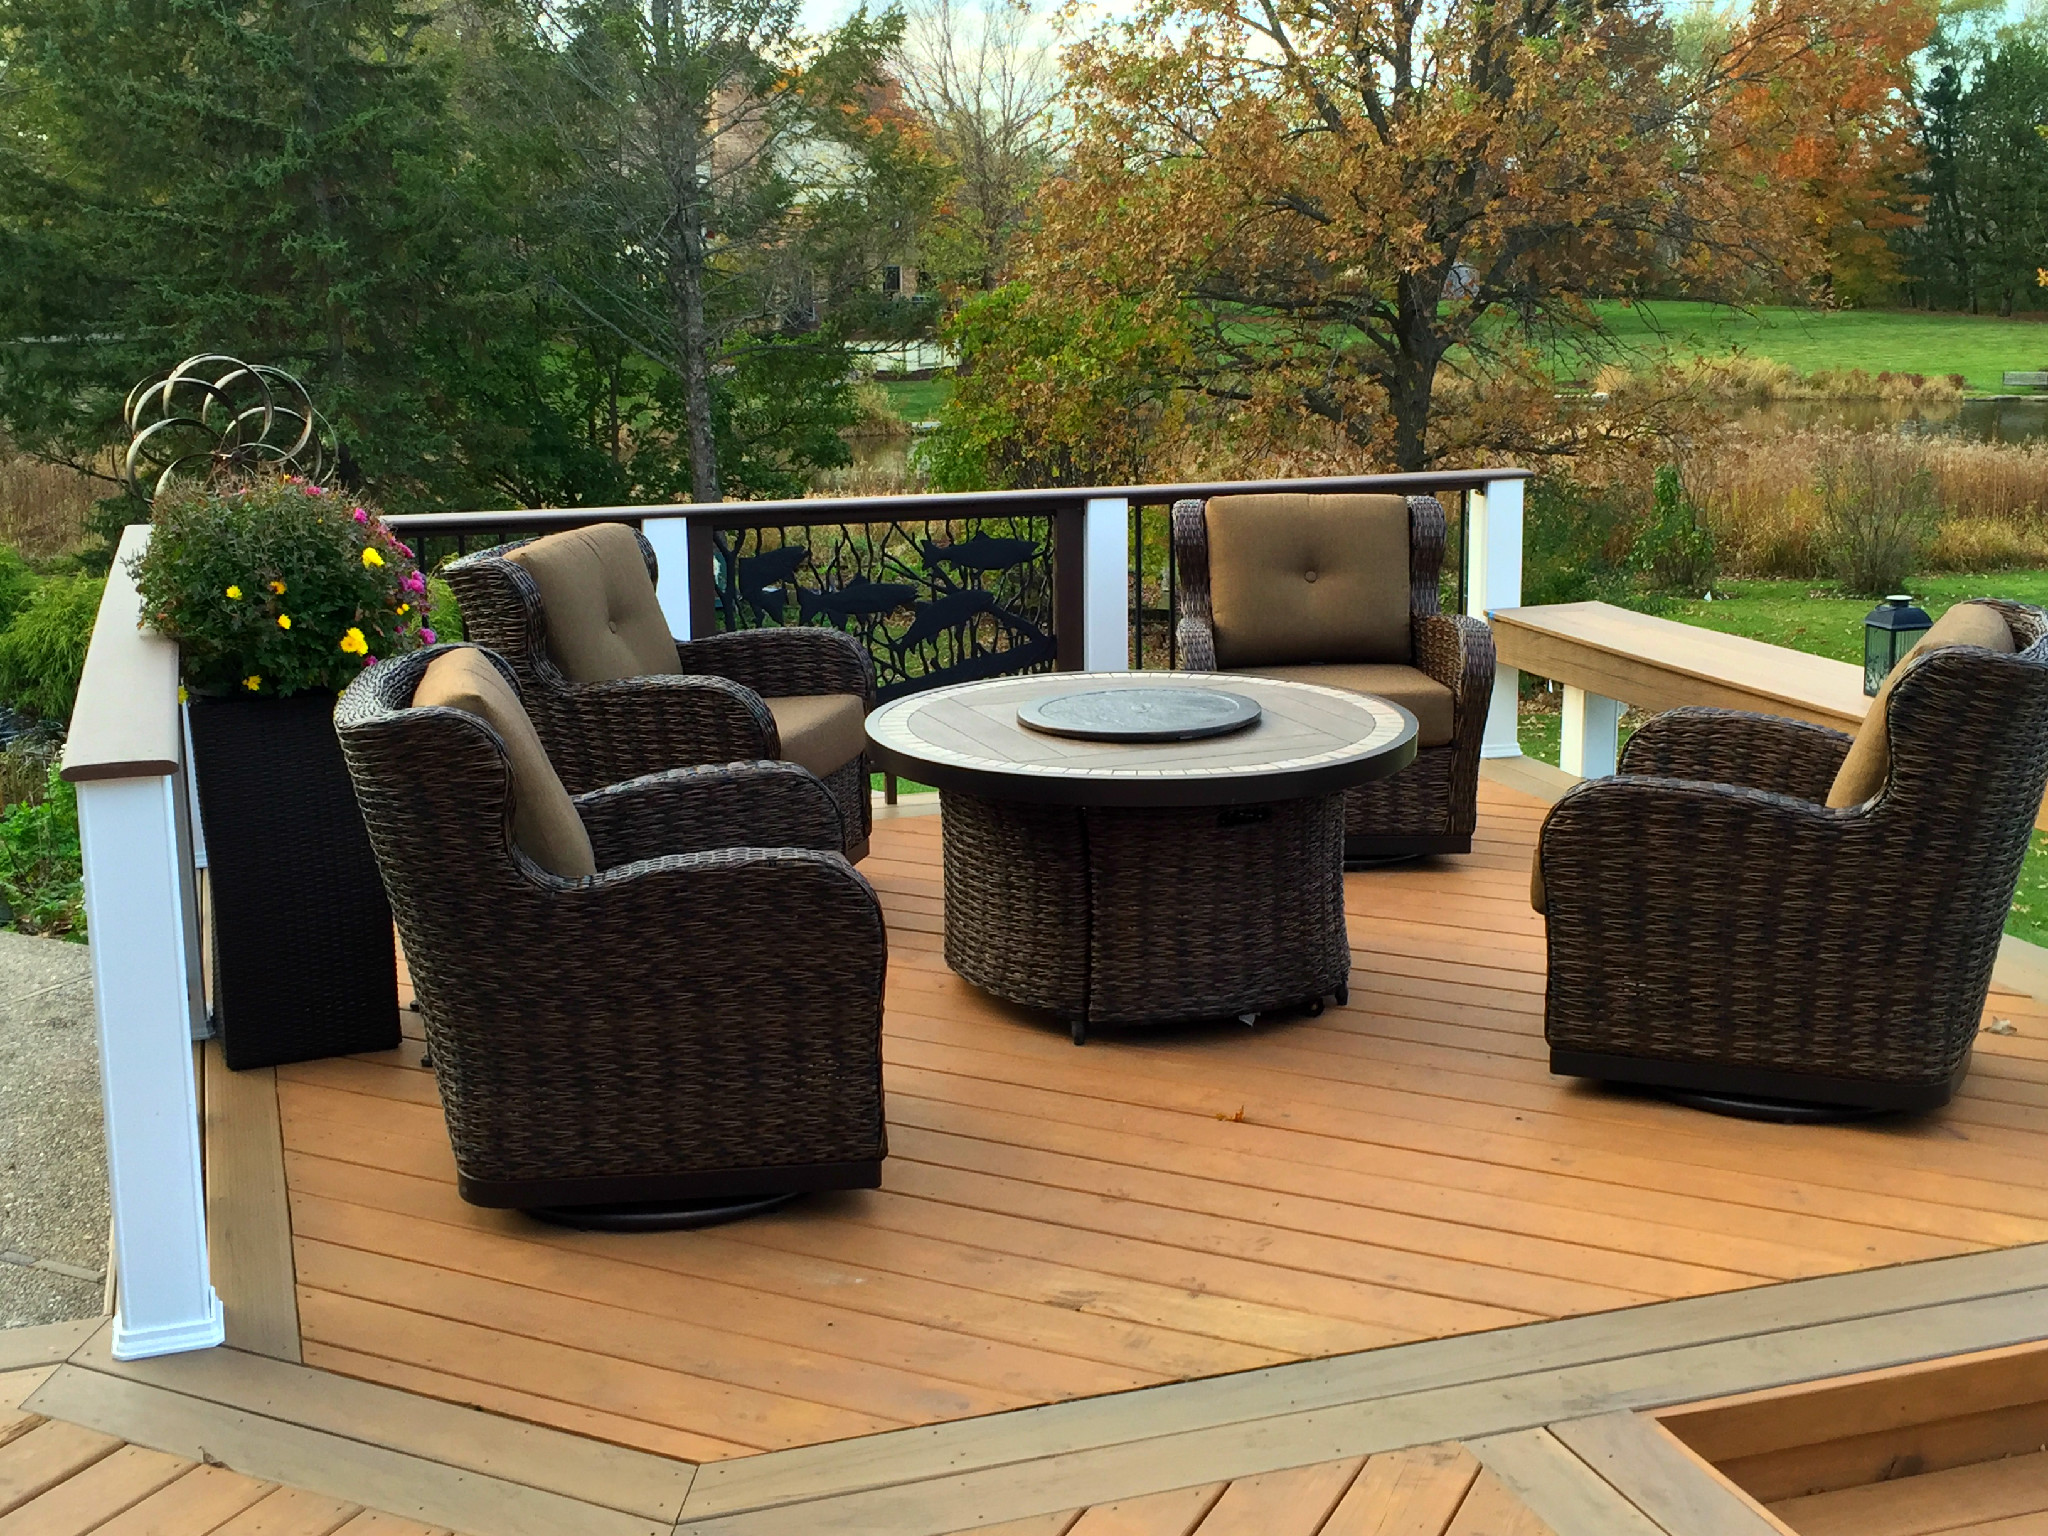 Wood Or Low Maintenance Materials   Whatu0027s Best For Your Chicagoland Deck  Design?